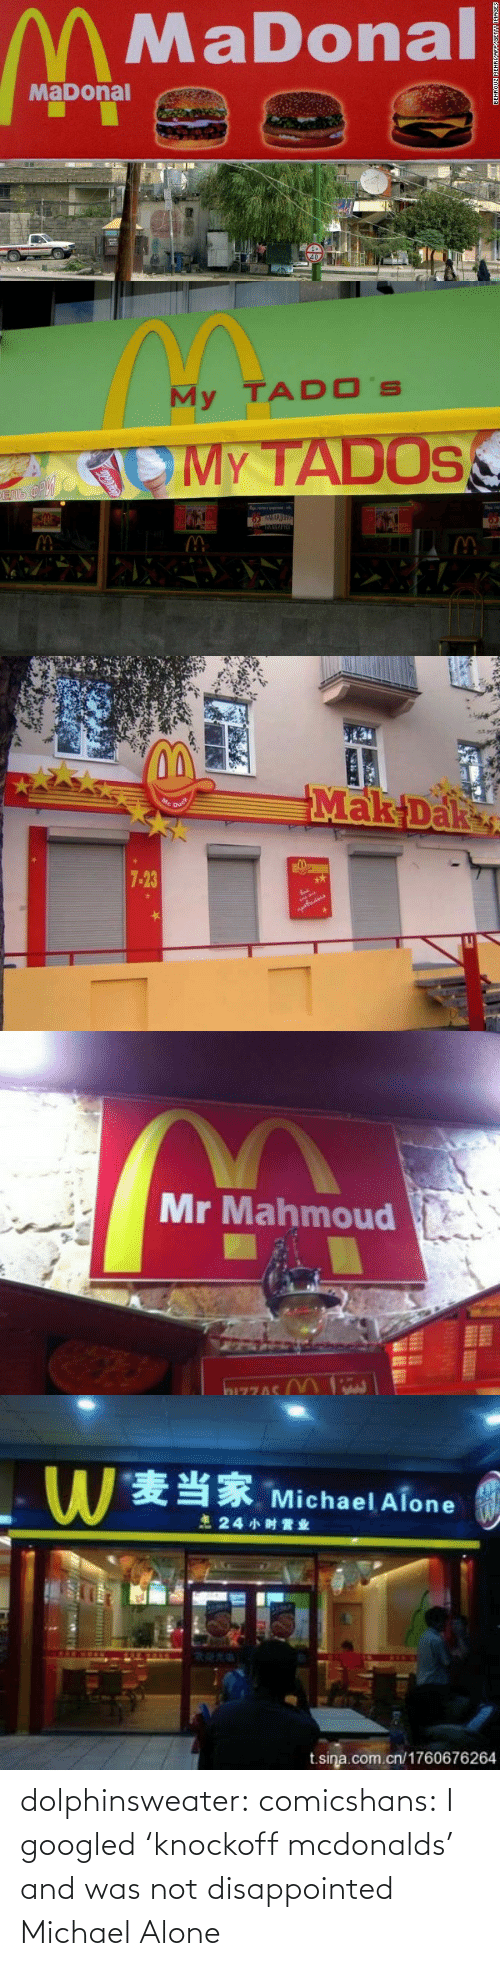 Disappointed: MaDonal  MaDonal   My TADO 's  m.  en   Mr Mahmoud   麦当家Michael Alone  24小时营业  t sina.com.cn/1760676264 dolphinsweater:  comicshans:  I googled 'knockoff mcdonalds' and was not disappointed  Michael Alone